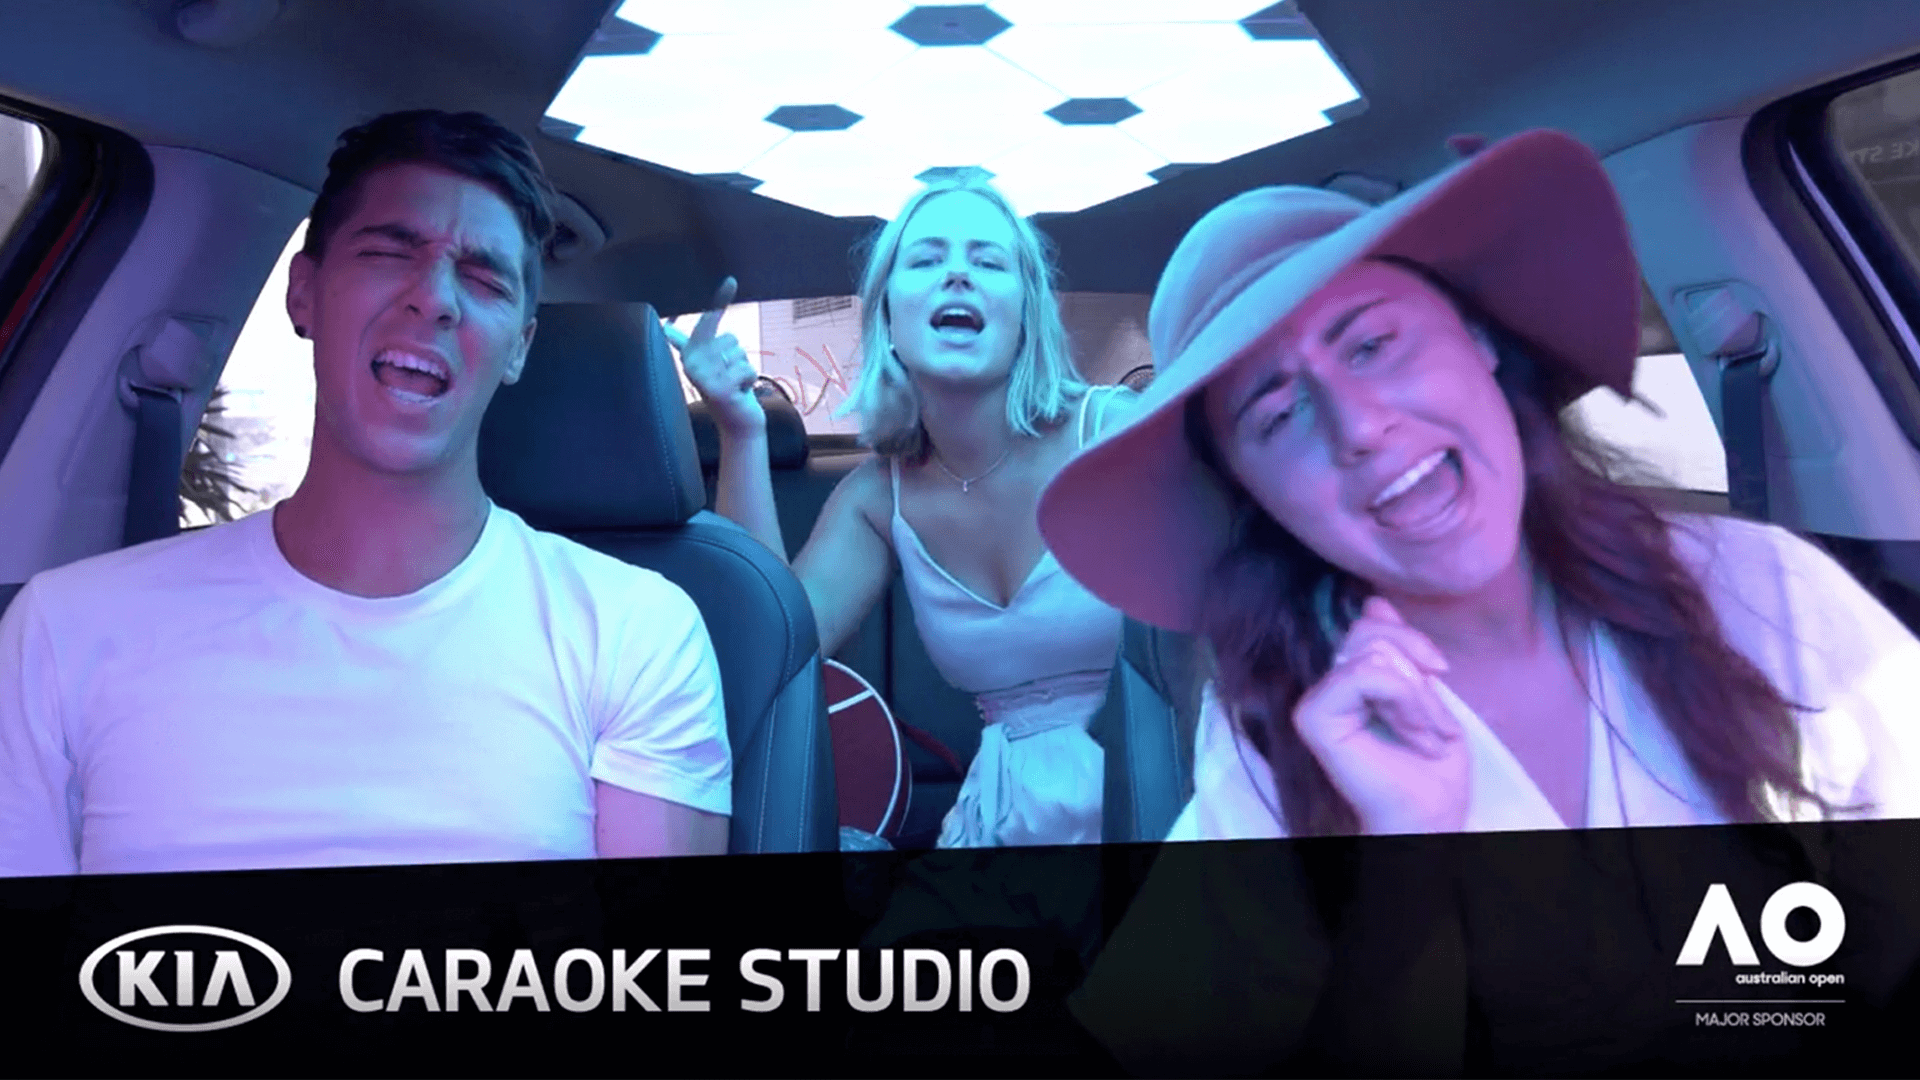 Screenshot from the in-car experience of Kia Caraoke Studio